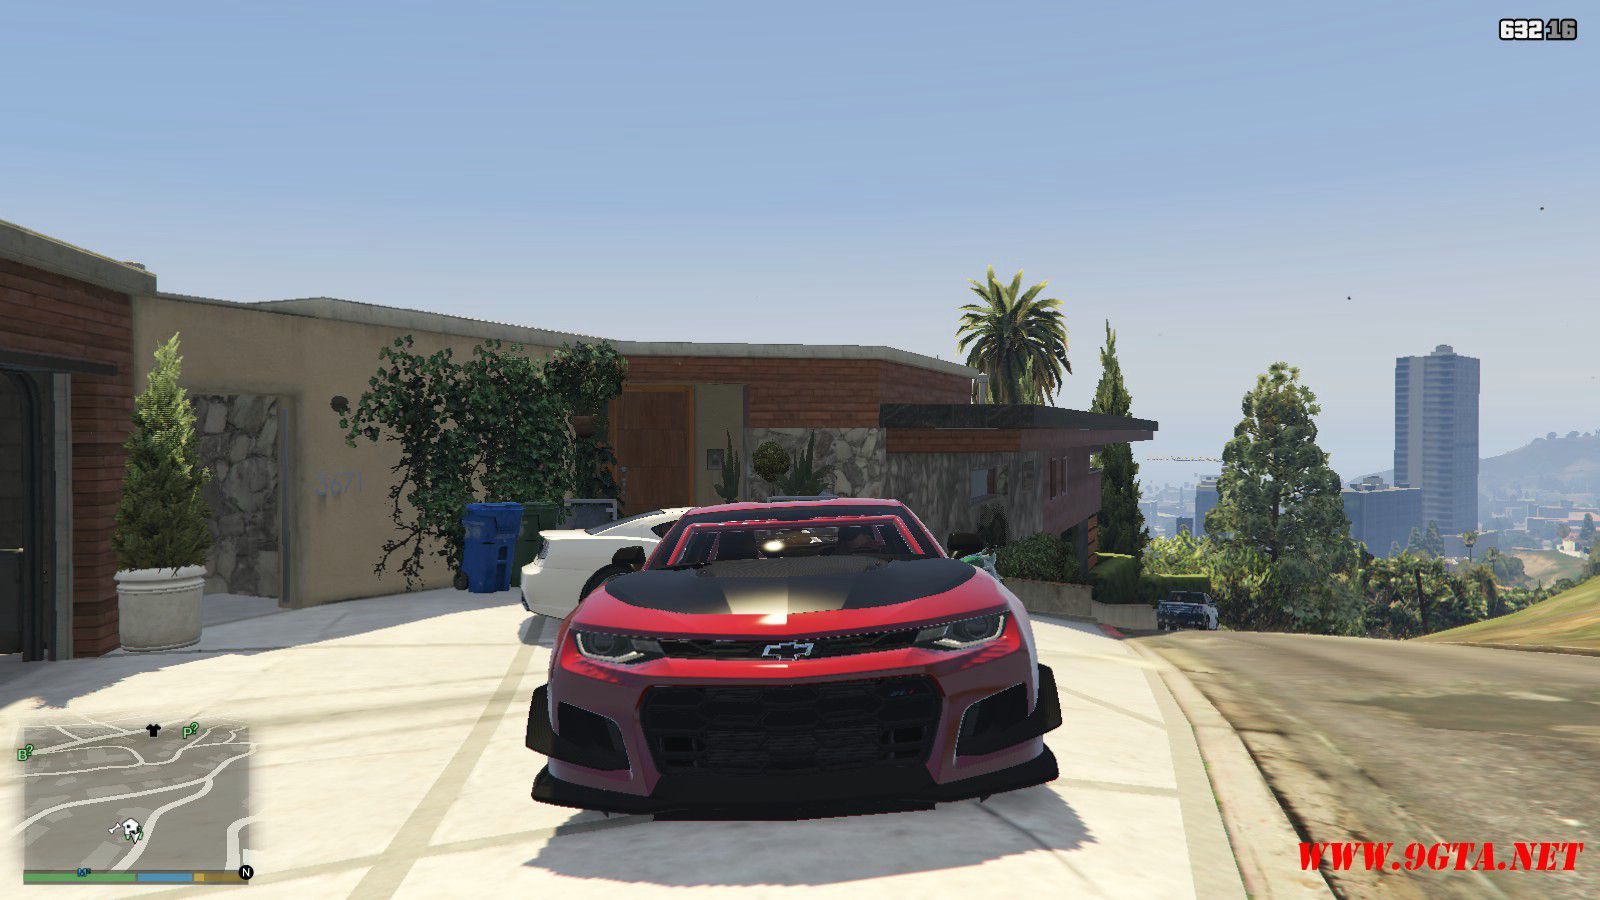 2018 Chevrolet Camaro ZL1 LE Mod For GTA5 (9)